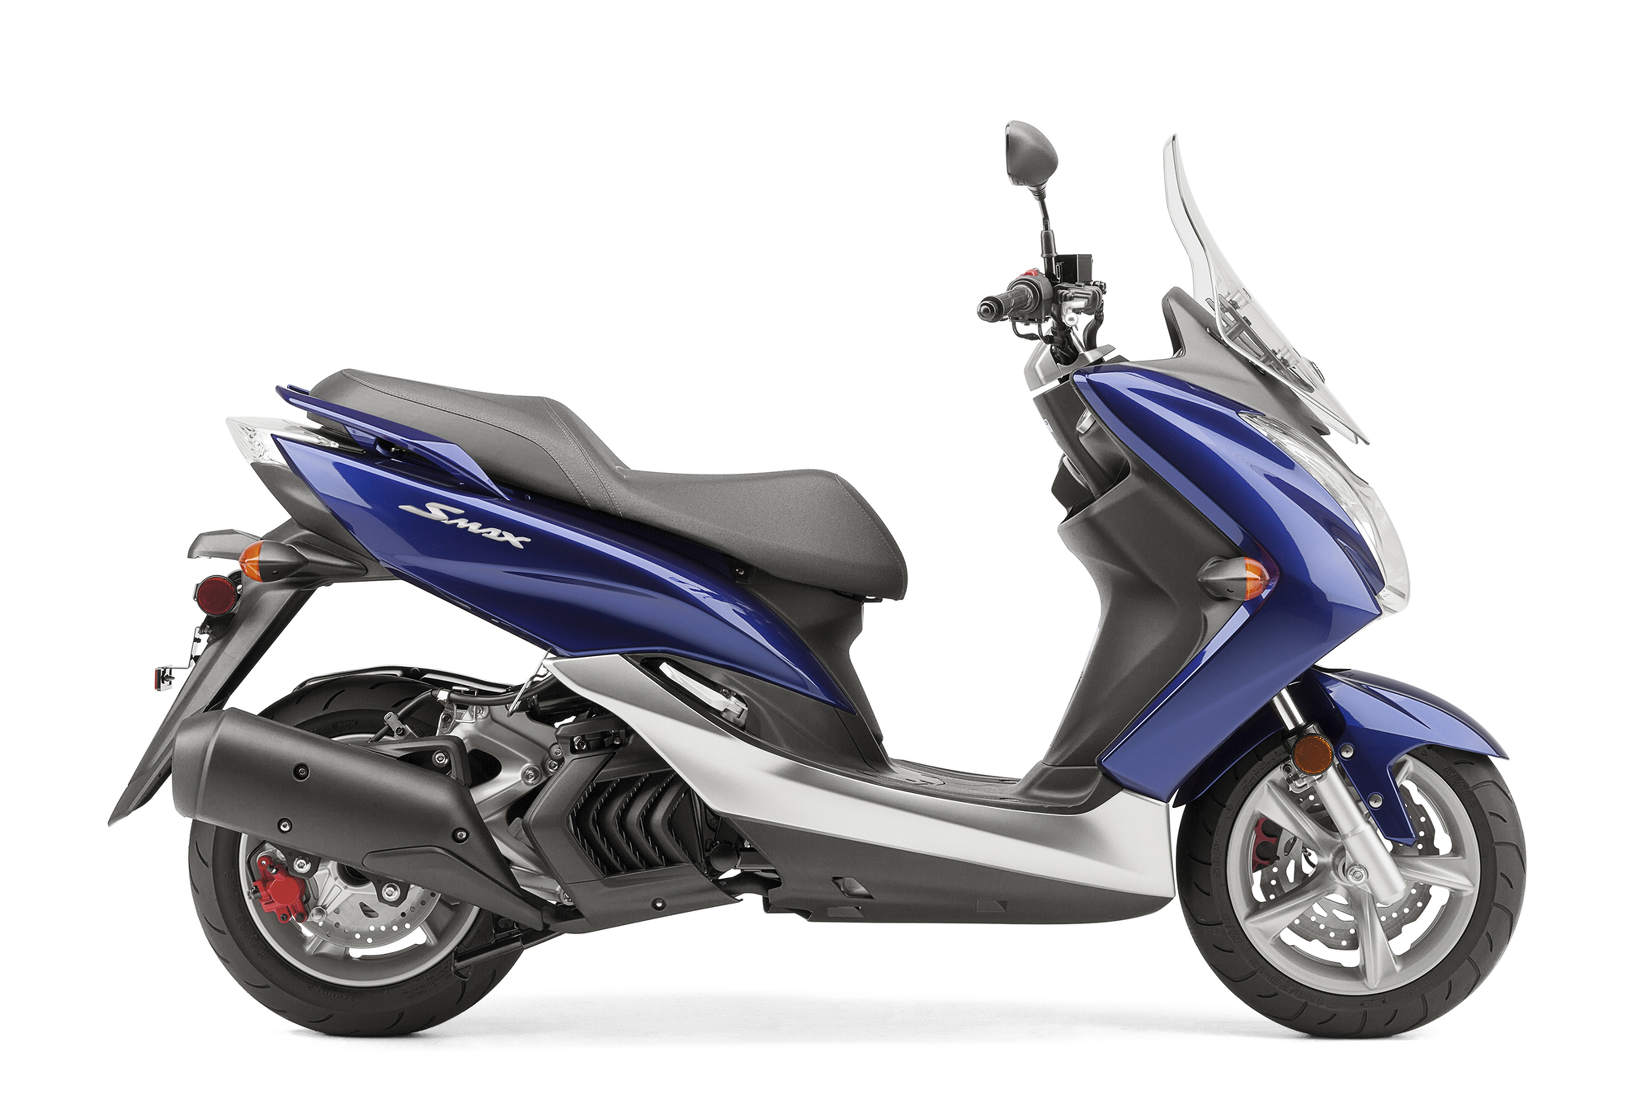 yamaha announces new smax scooter